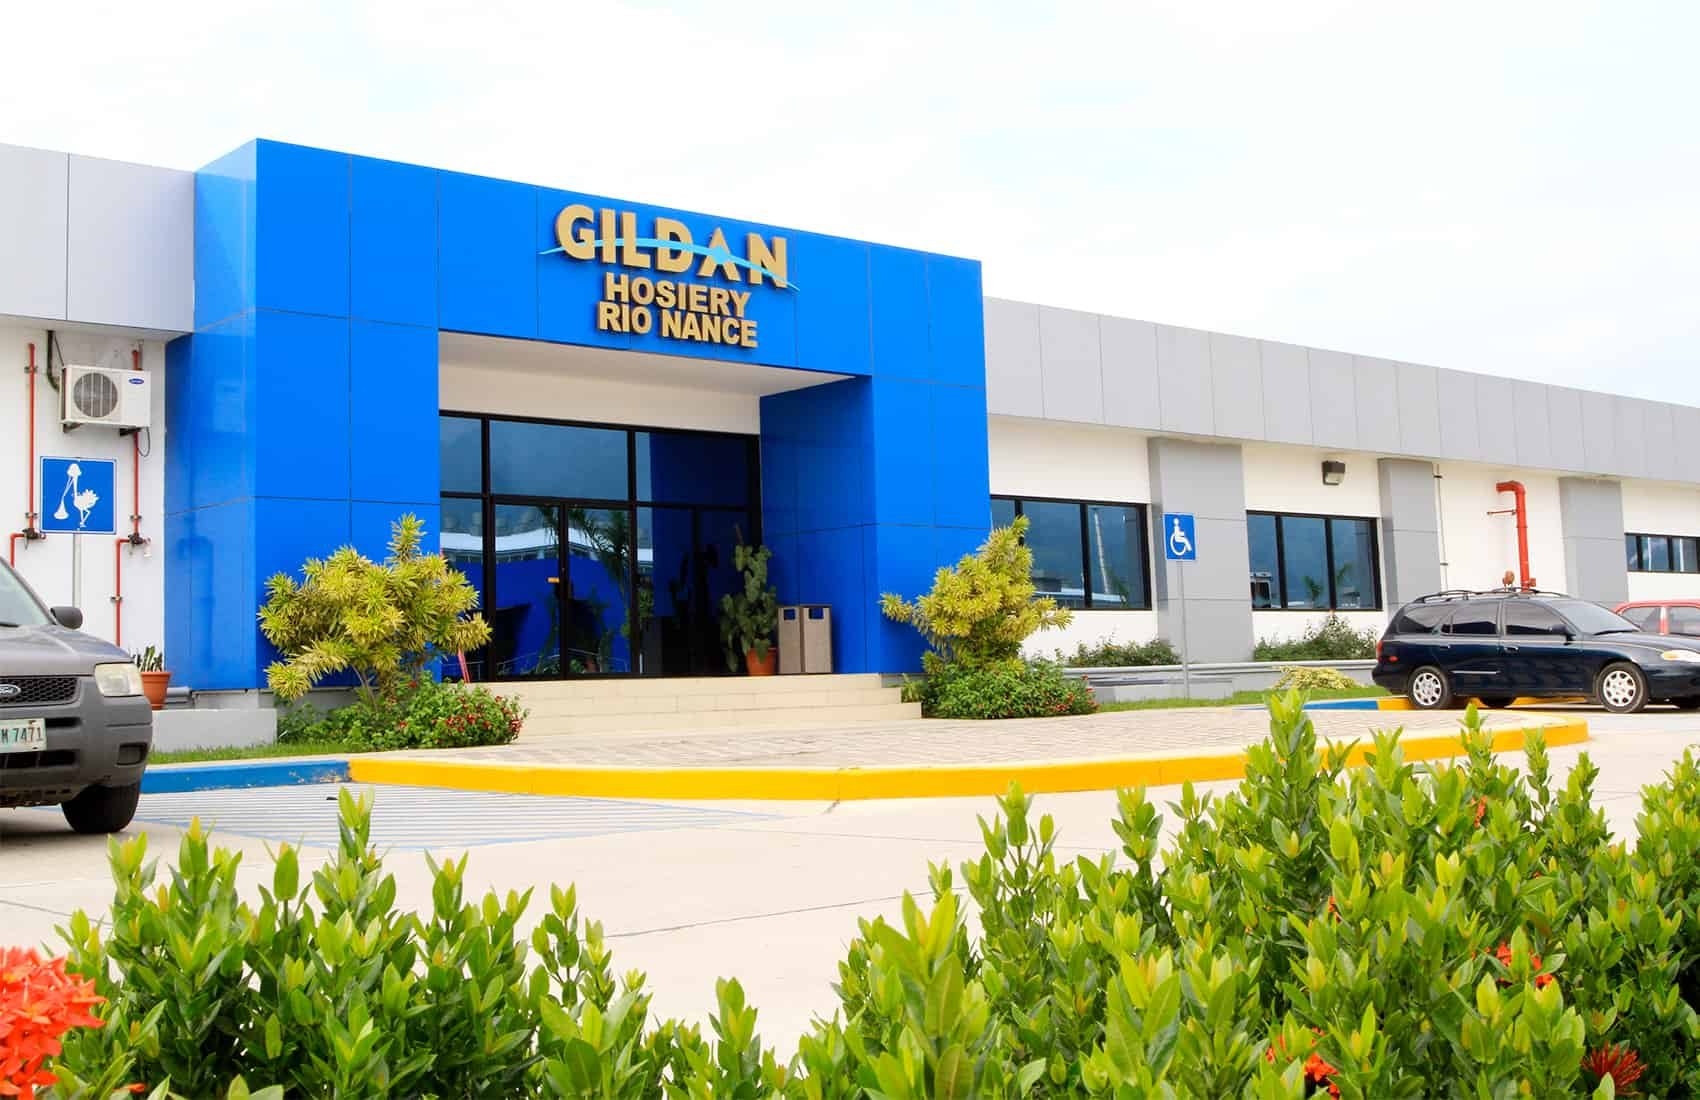 Gildan facilities in Honduras